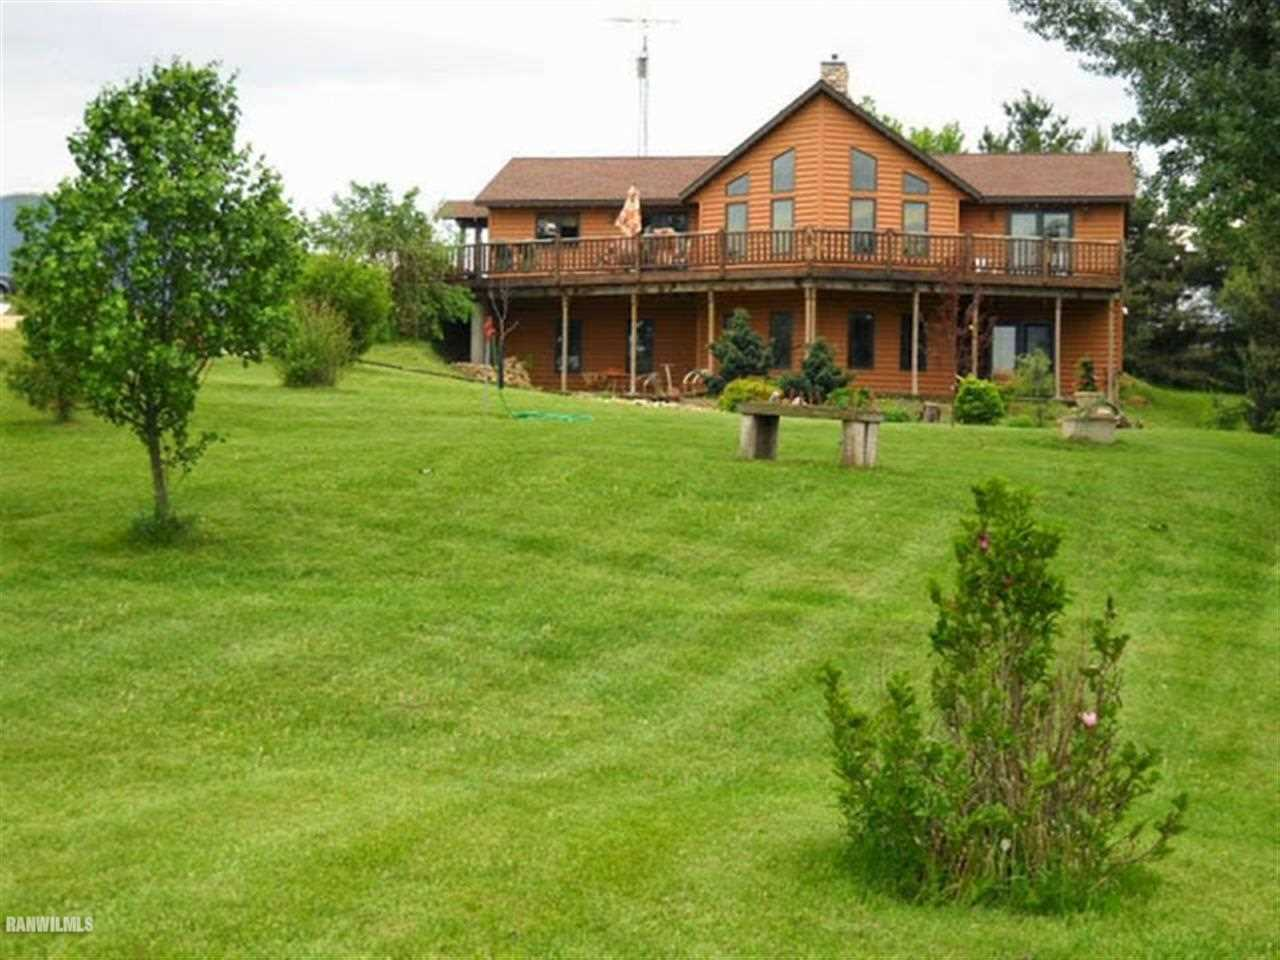 Image of Residential for Sale near Orangeville, Illinois, in Stephenson county: 41.35 acres